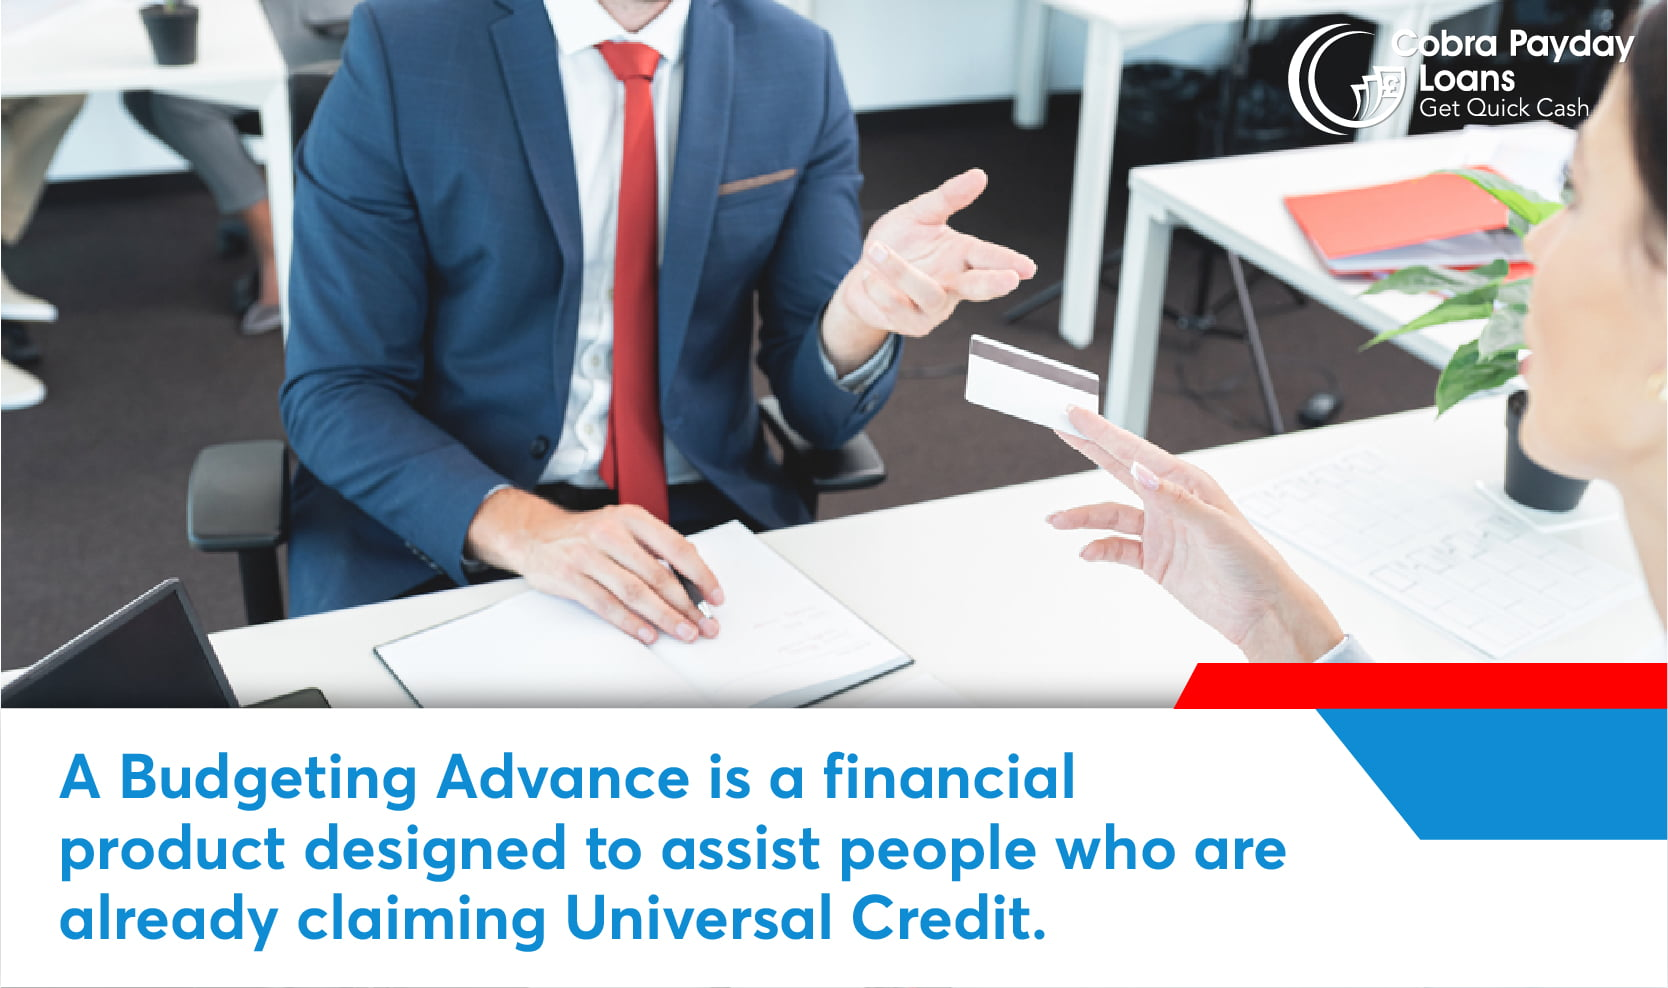 A Budgeting Advance is a financial product designed to assist people who are already claiming Universal Credit